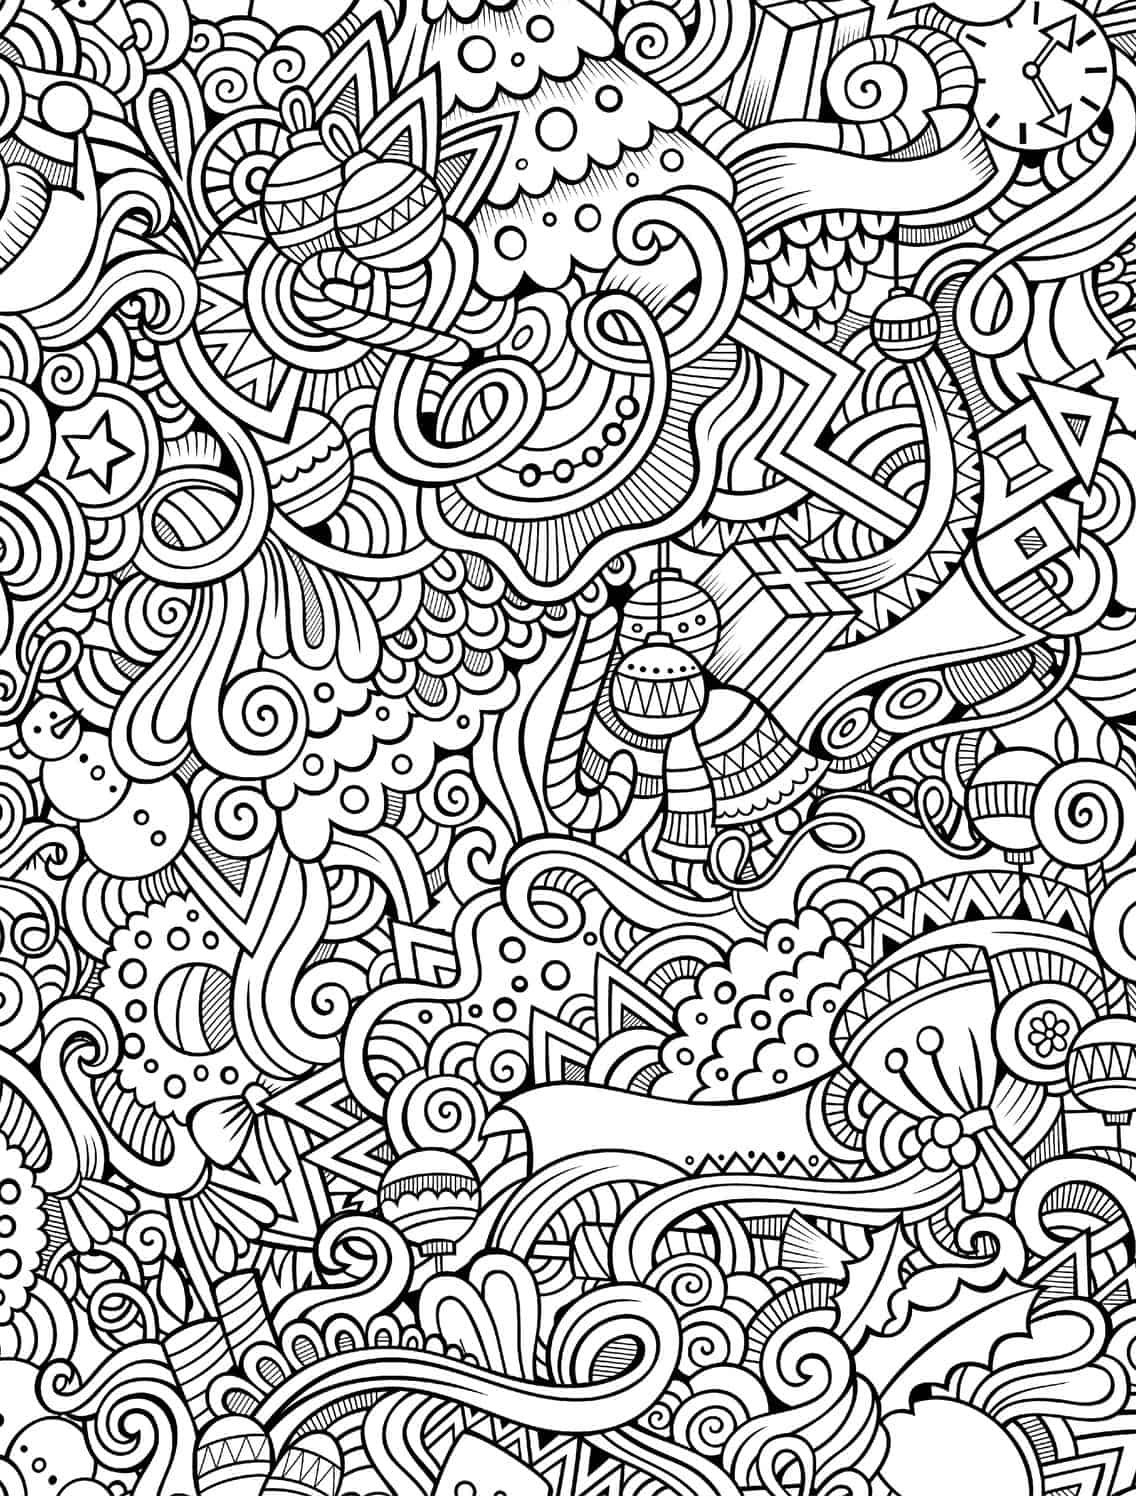 Printable coloring books - Jpeg For All Here